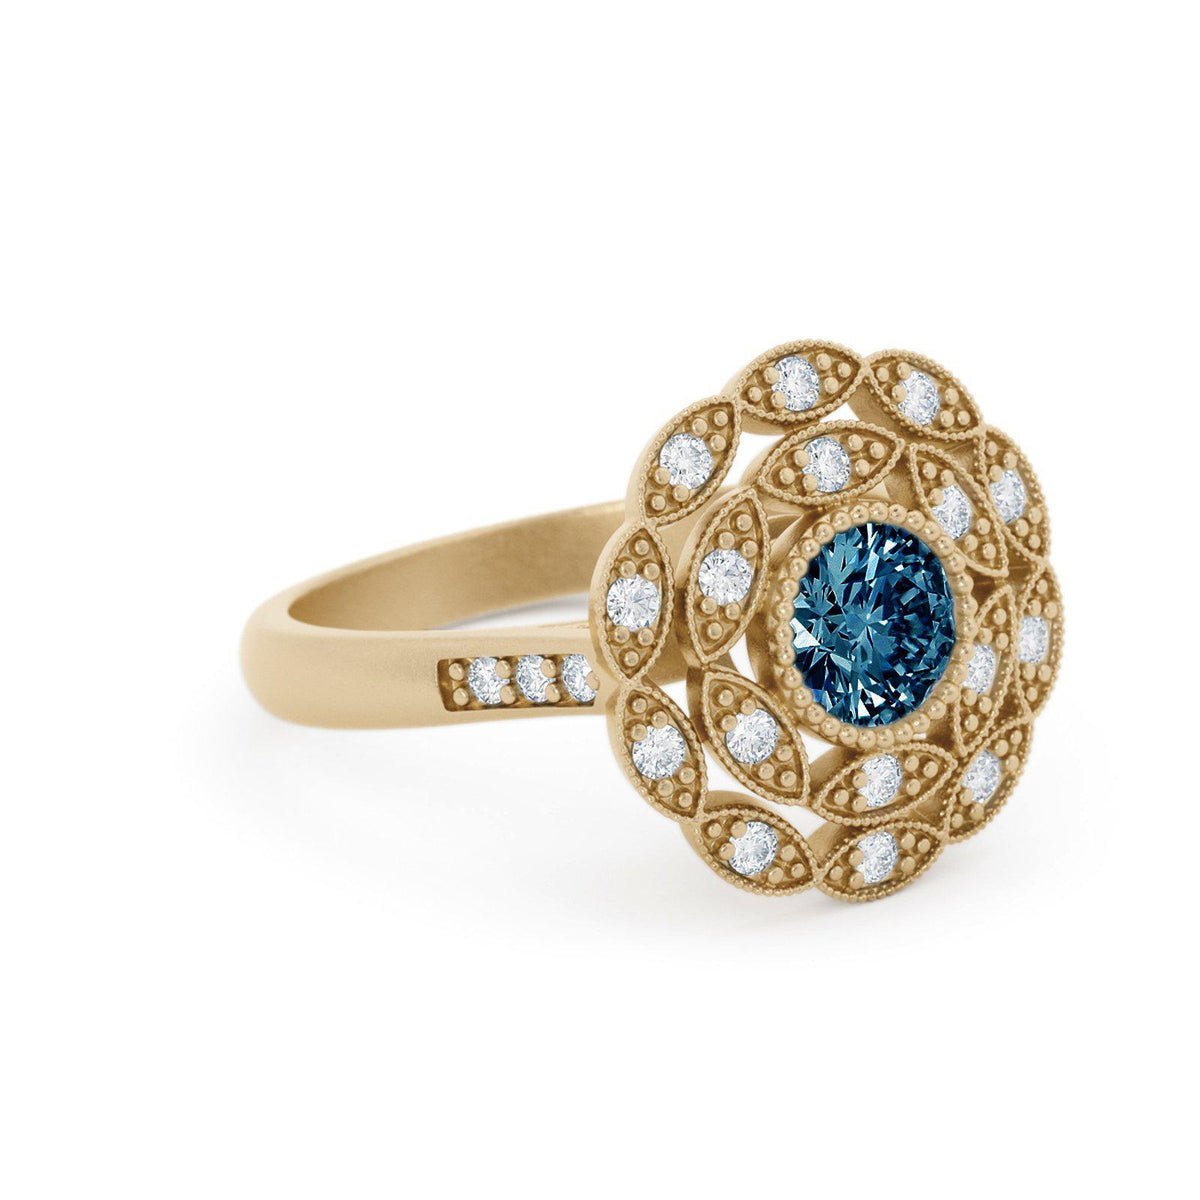 Rosabella Montana Sapphire Ring with Double Halo Yellow Gold